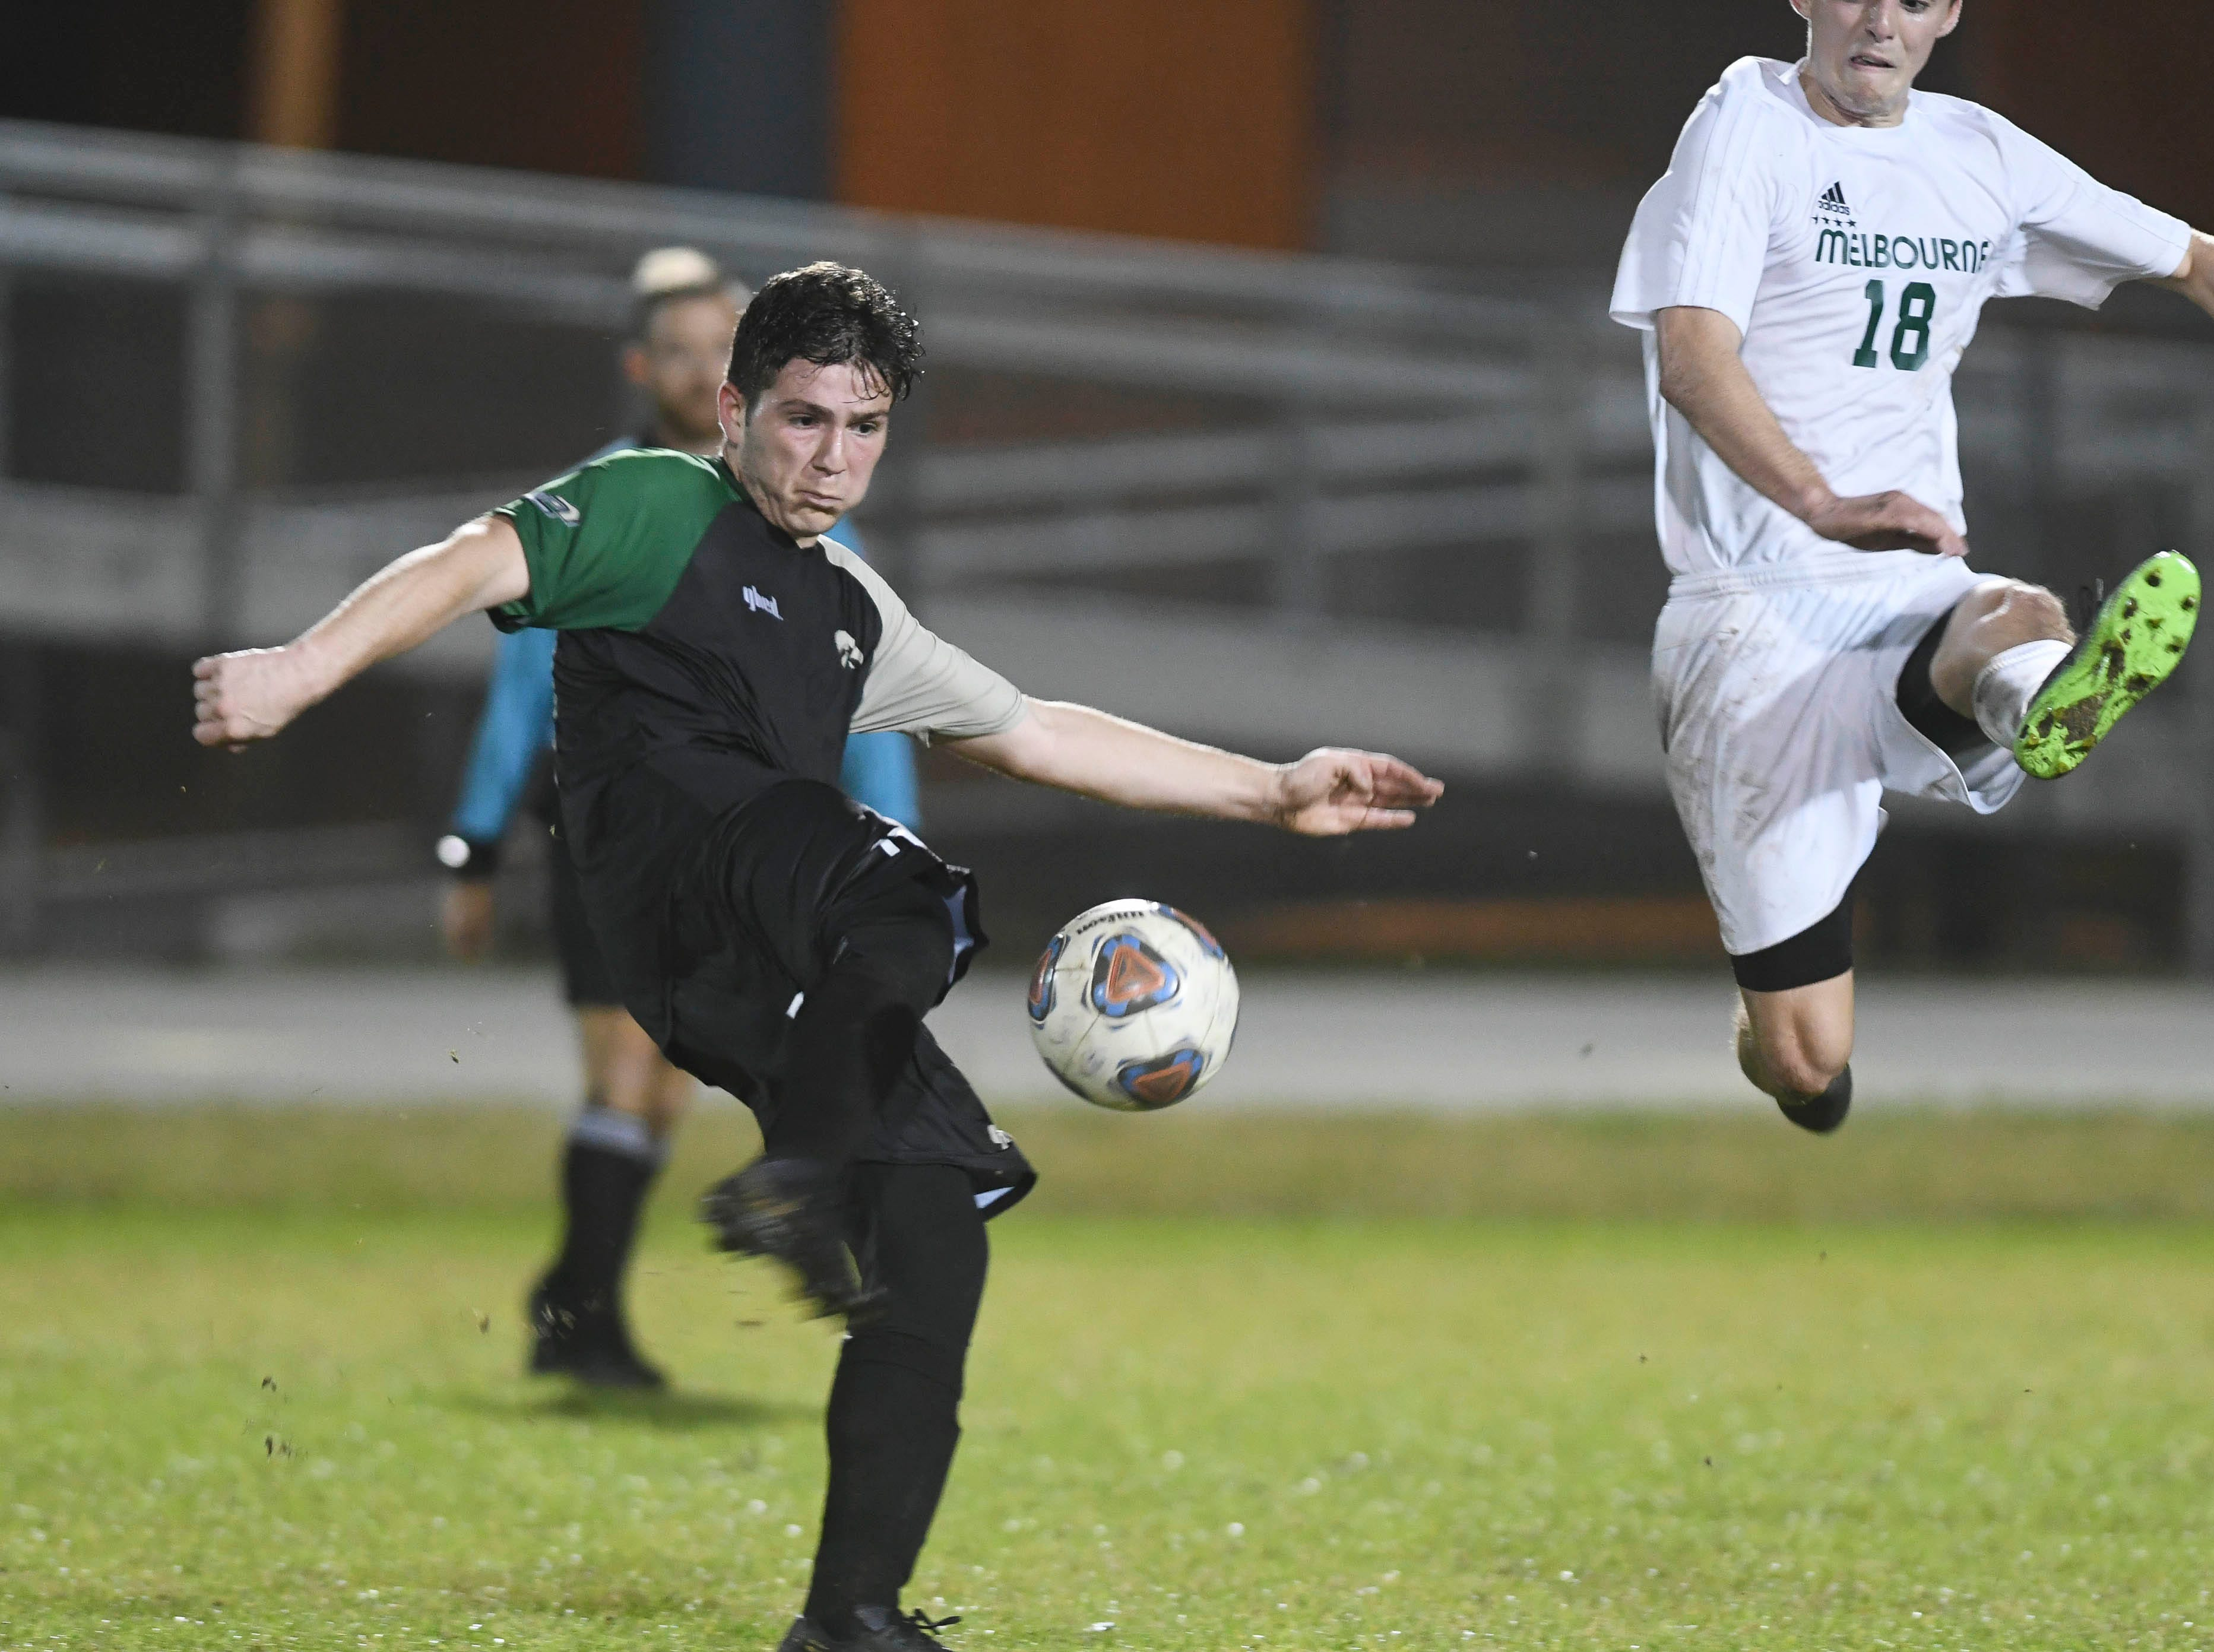 Christian Becerra of Viera drives the ball away from Cooper Bywater of Melbourne during Friday's game at Viera High.